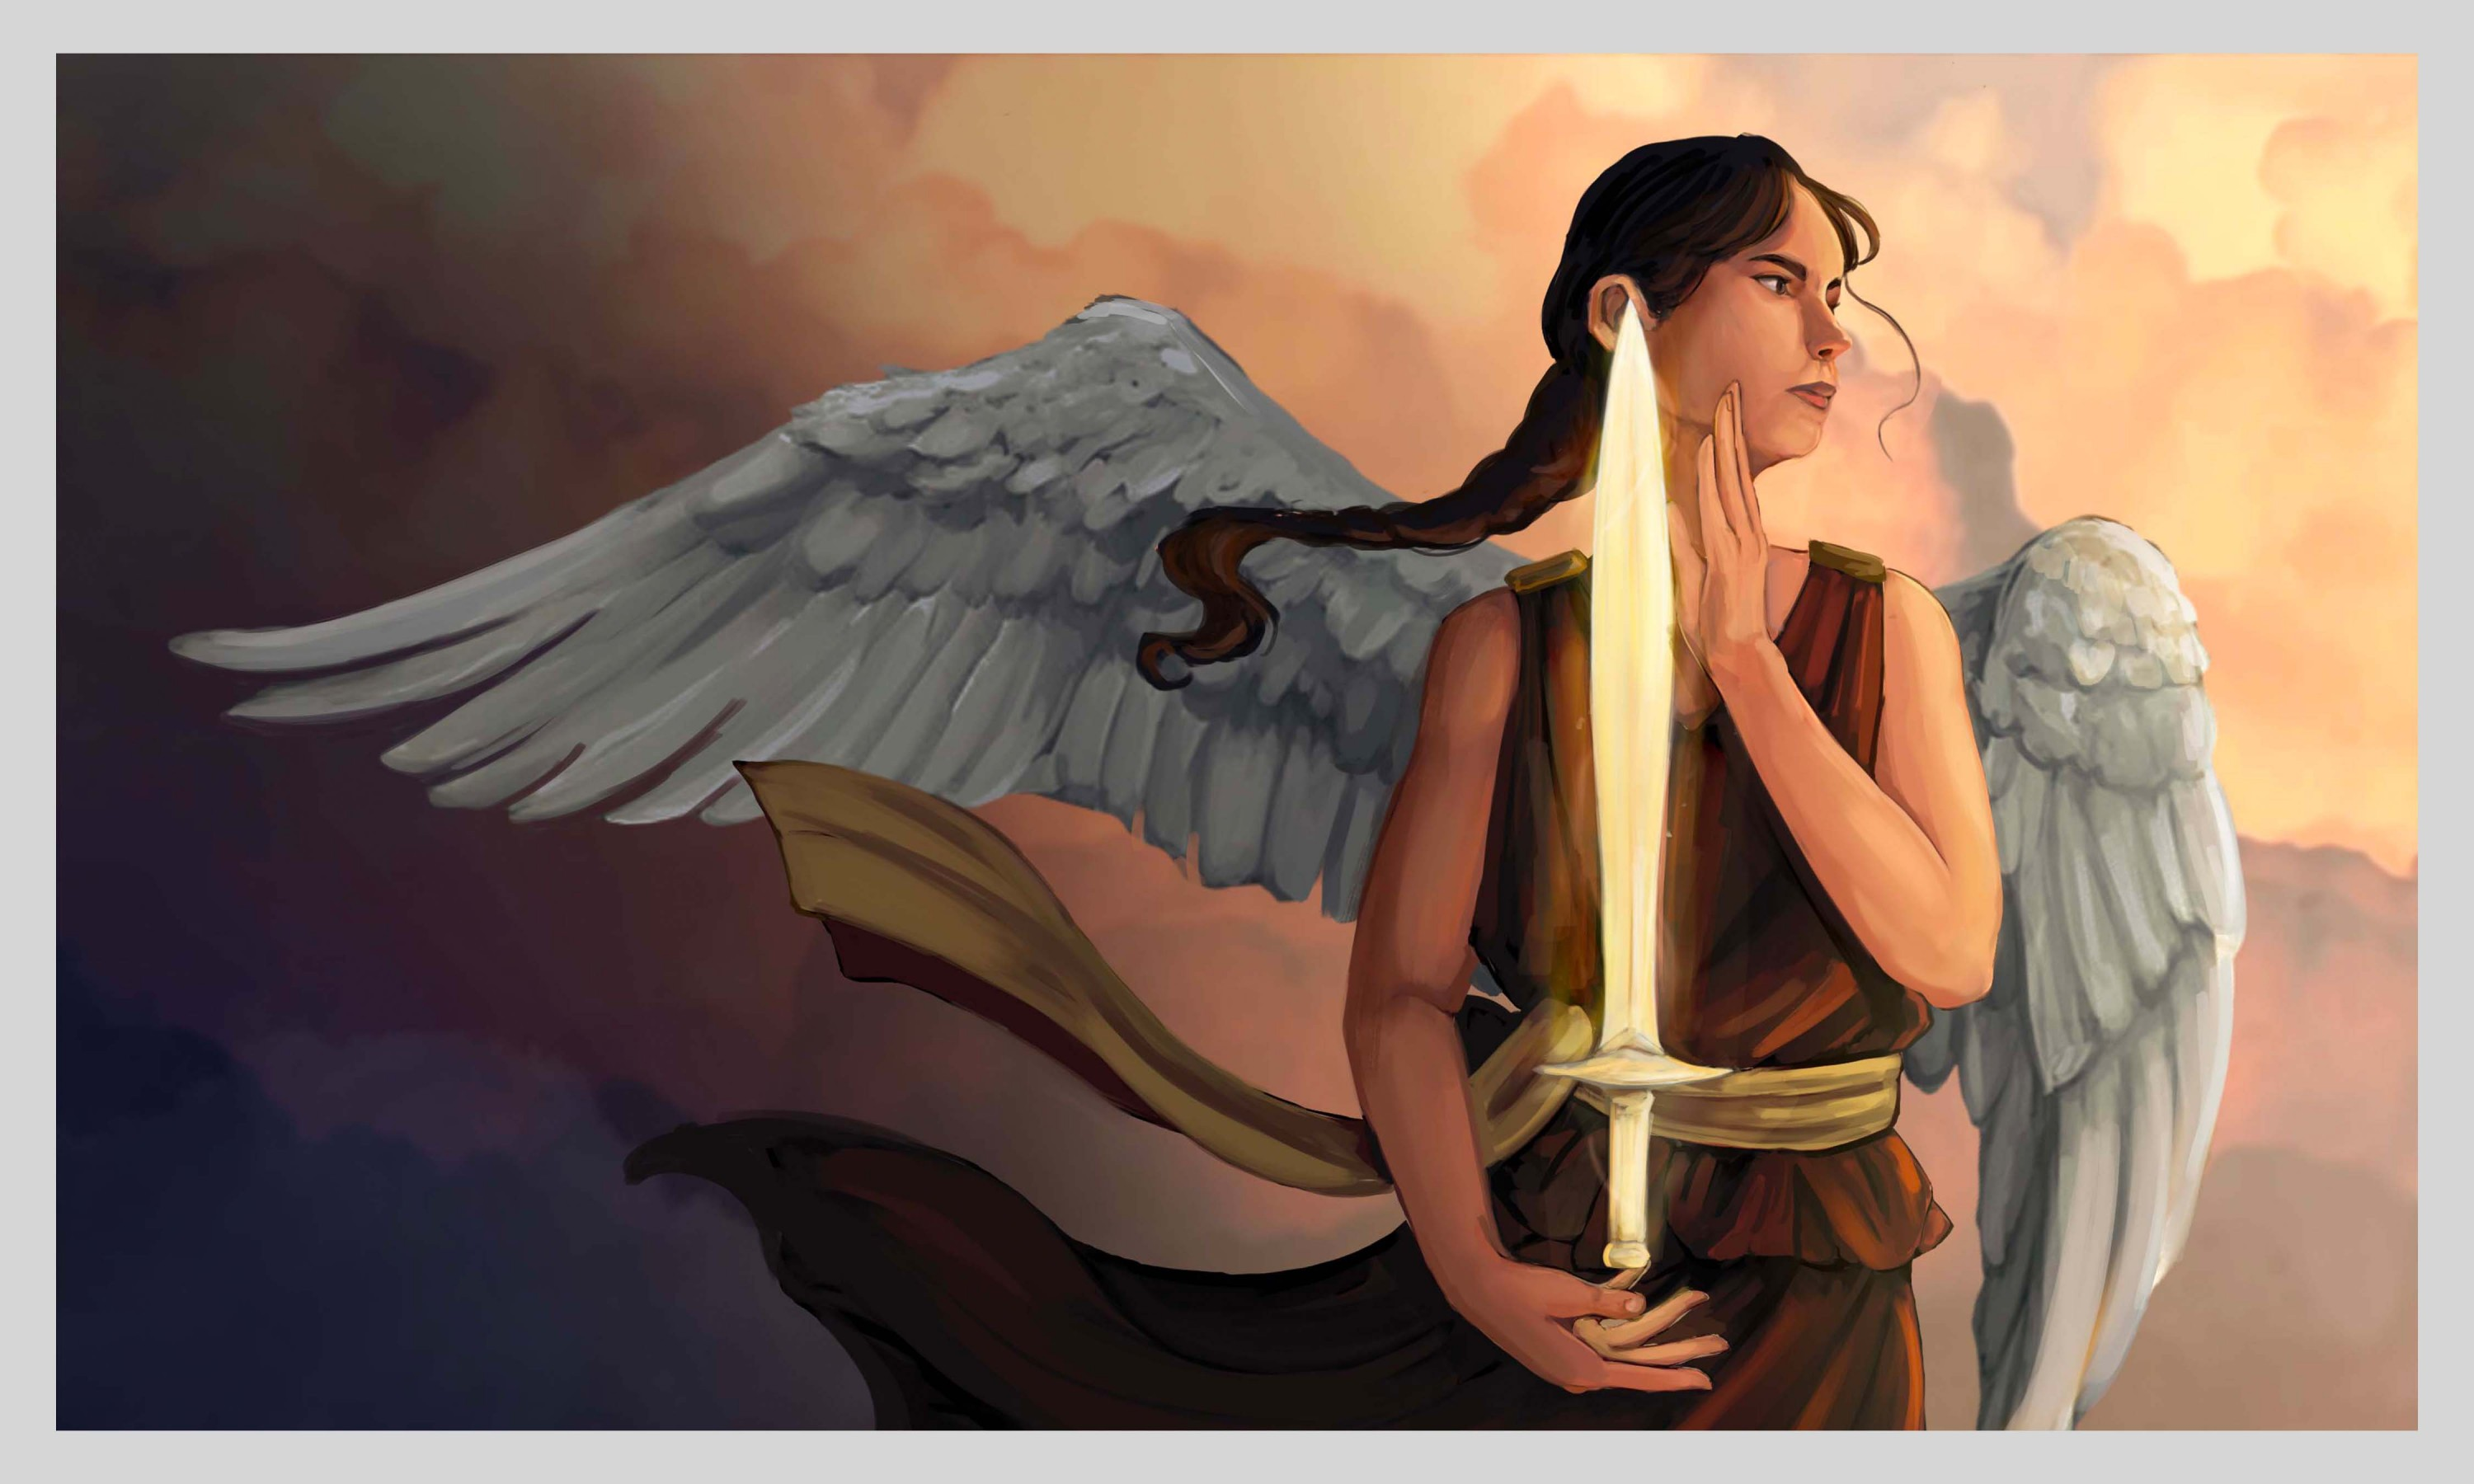 Nike, the main character, is shown looking out into the far right. She holds a shining sword. Her wings and dress is blown by the wind. Clouds are shown in the background.